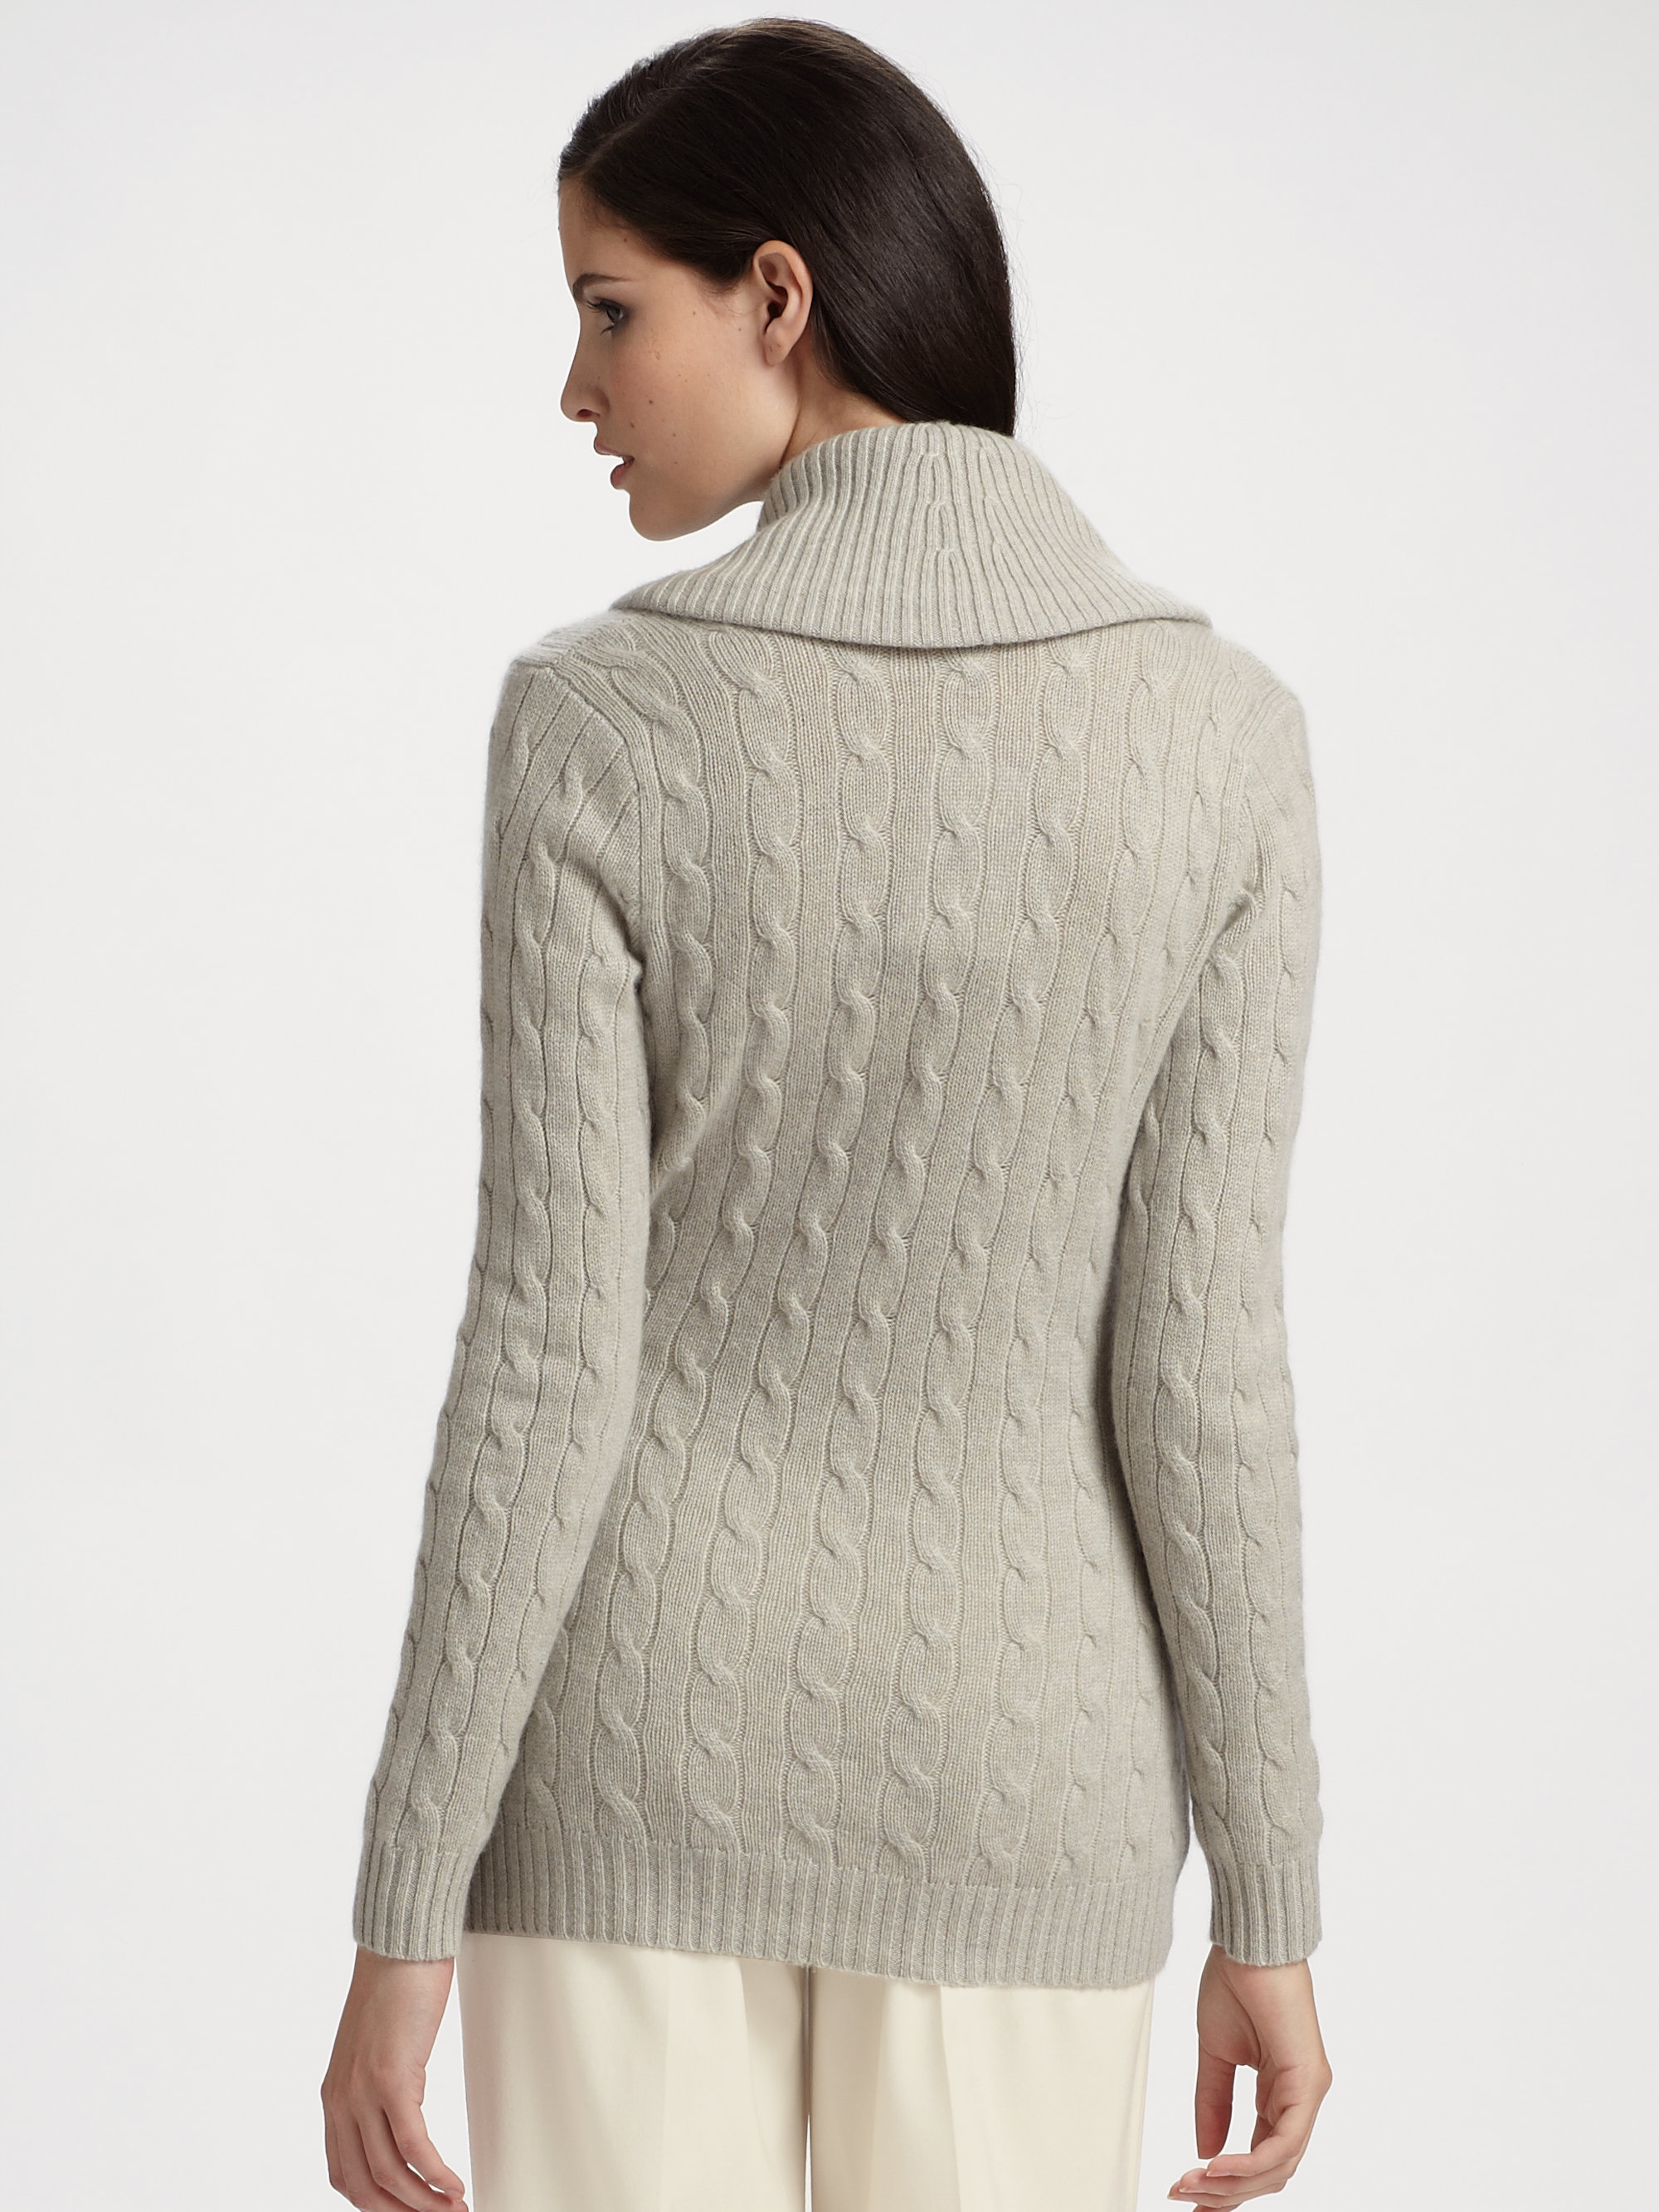 Ralph lauren black label Cashmere Wrap Front Sweater in Gray | Lyst